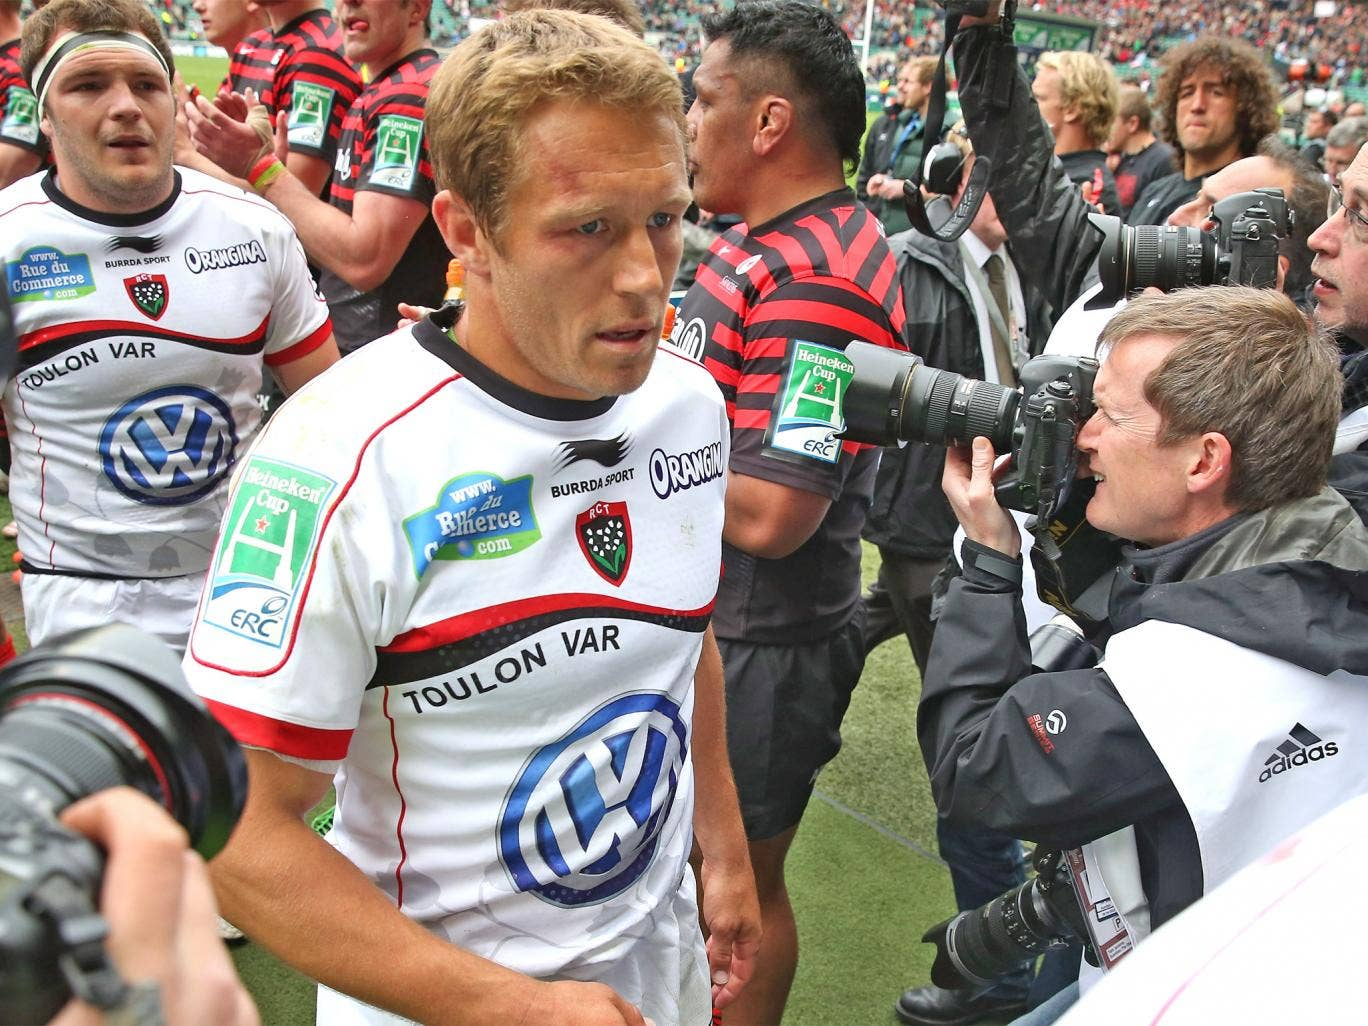 Jonny Wilkinson following Toulon's victory over Saracens at Twickenham last weekend